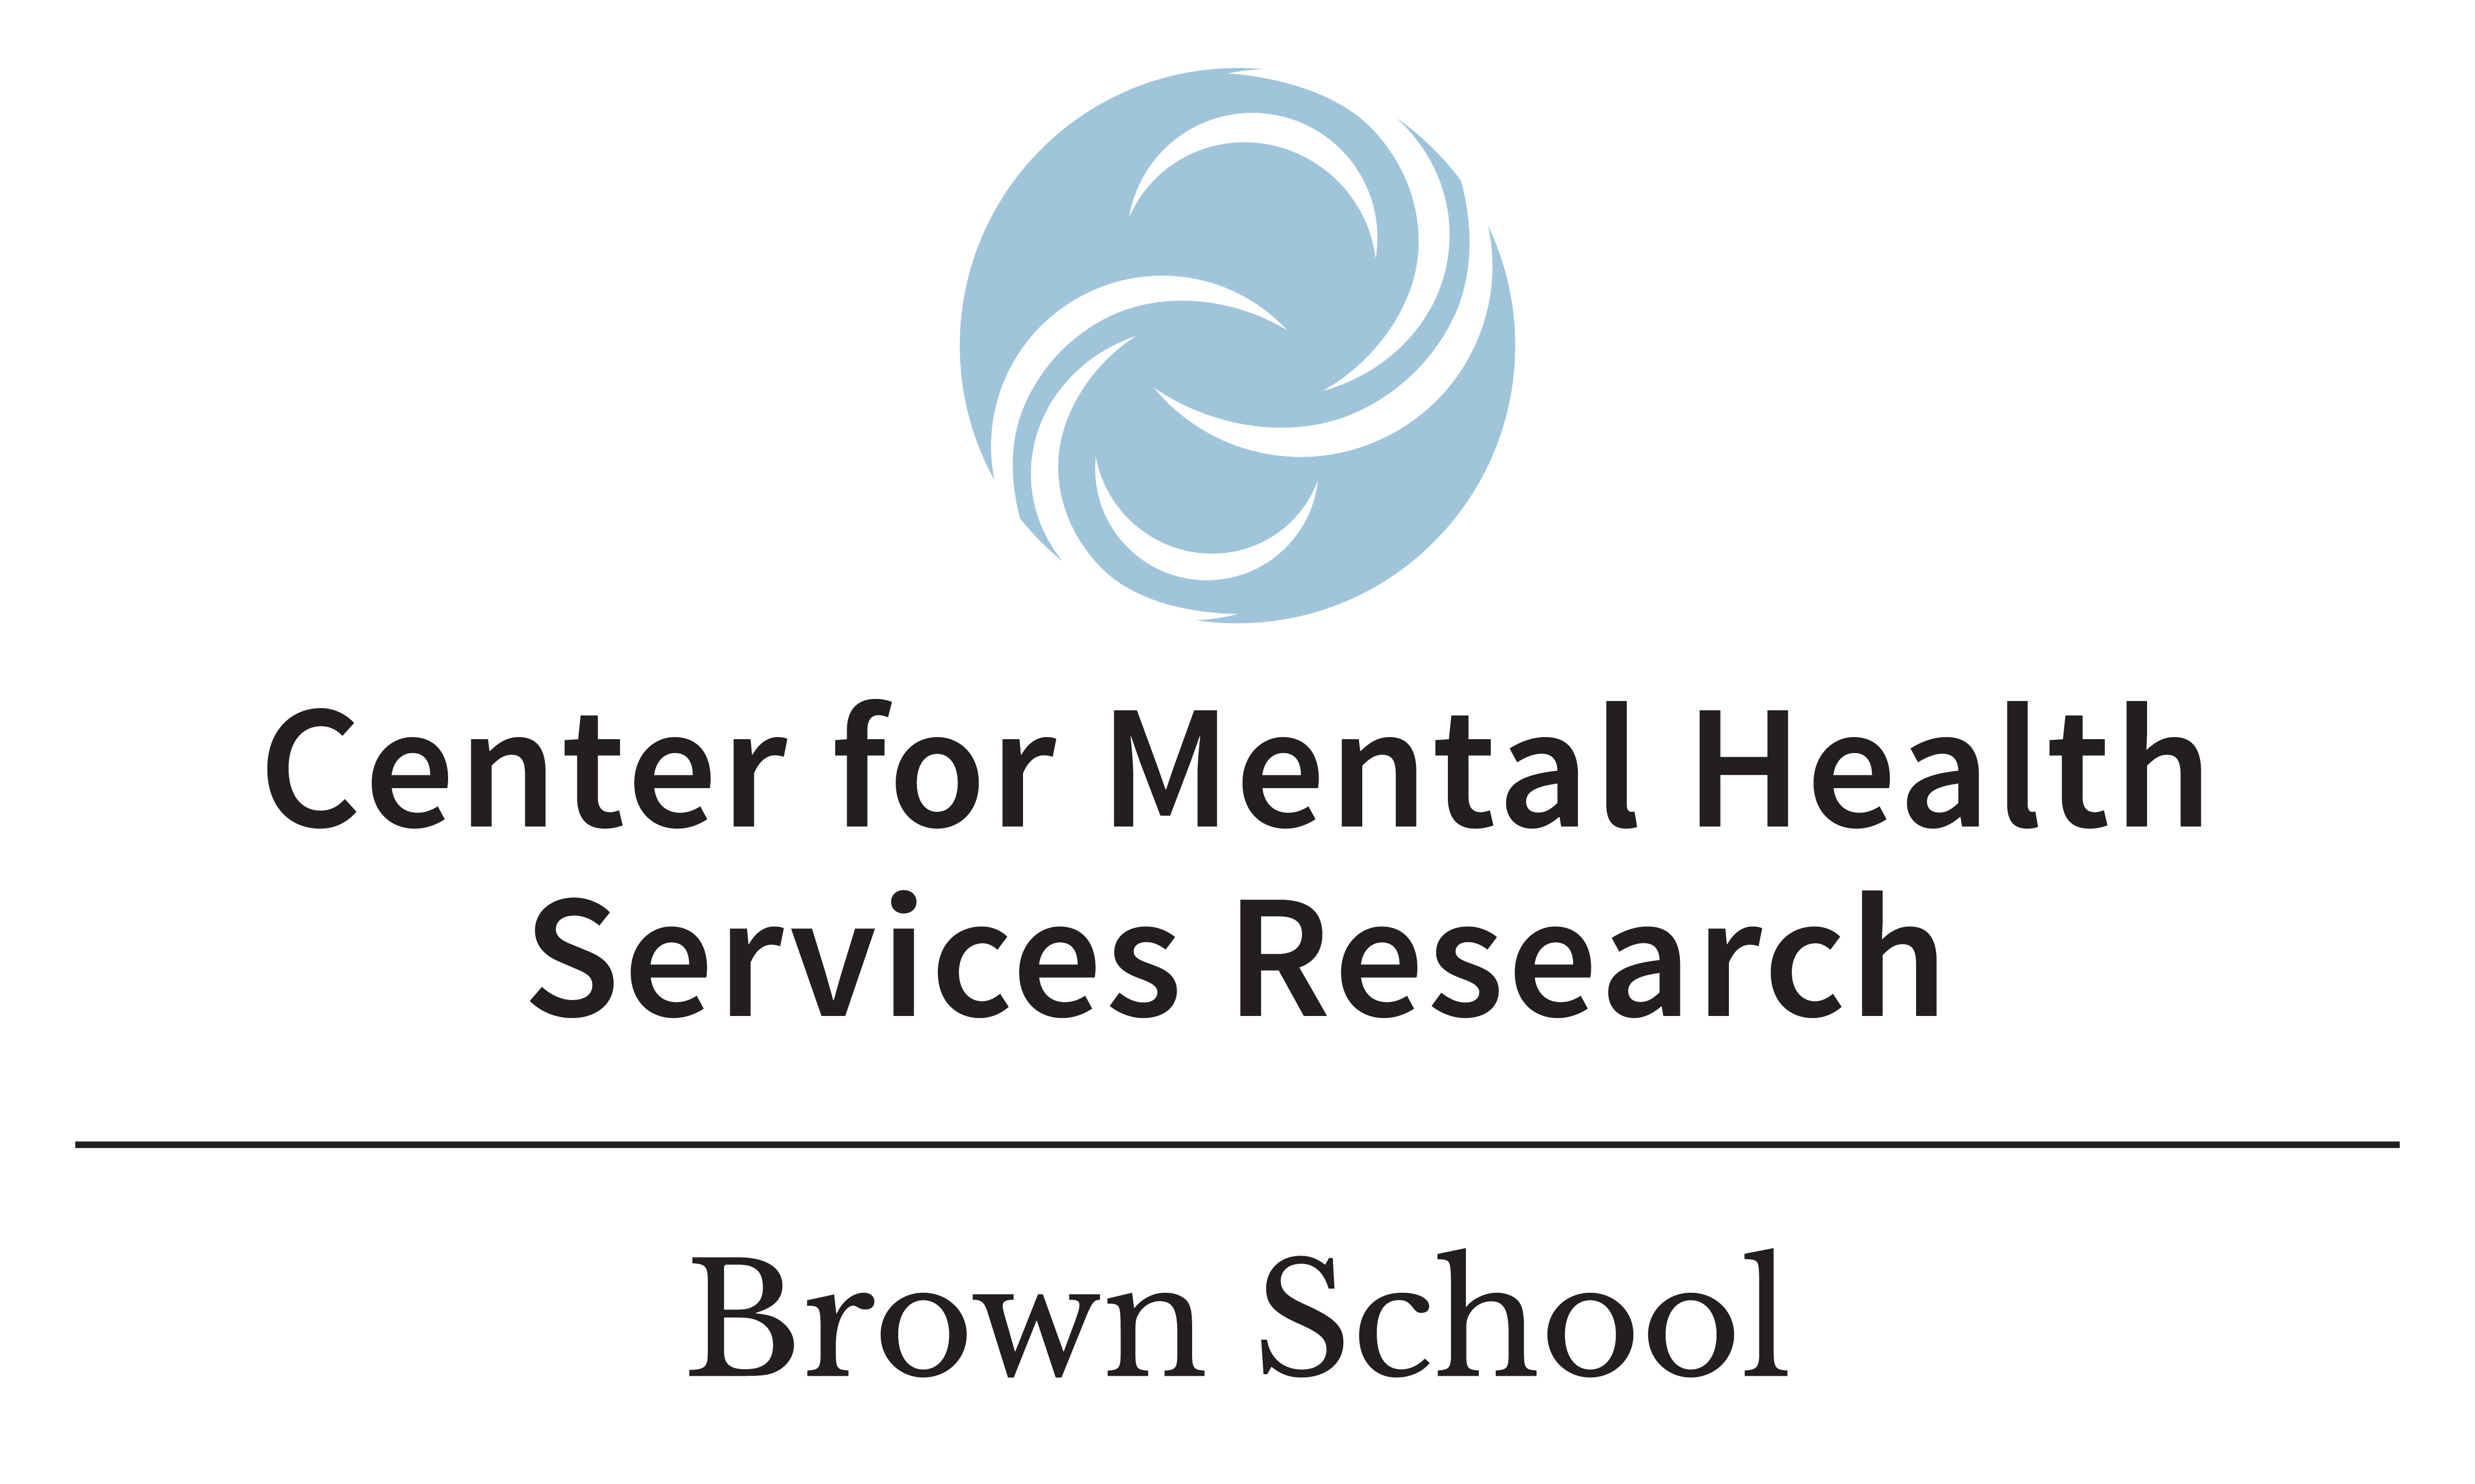 The logo for center for mental health services research has a blue circle with white swirls in it above the words